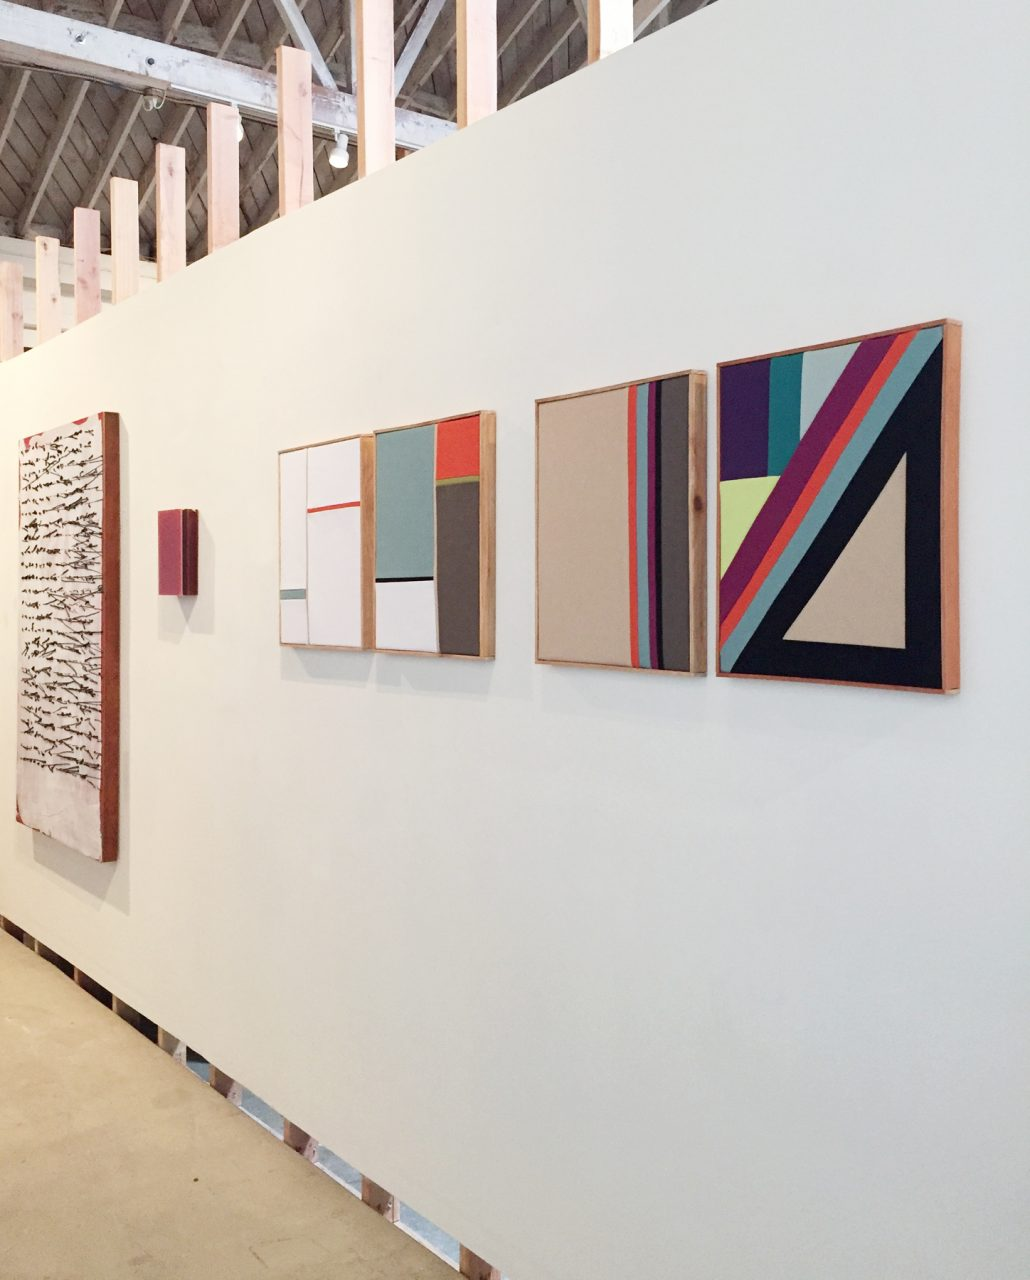 Installation shot from the group show